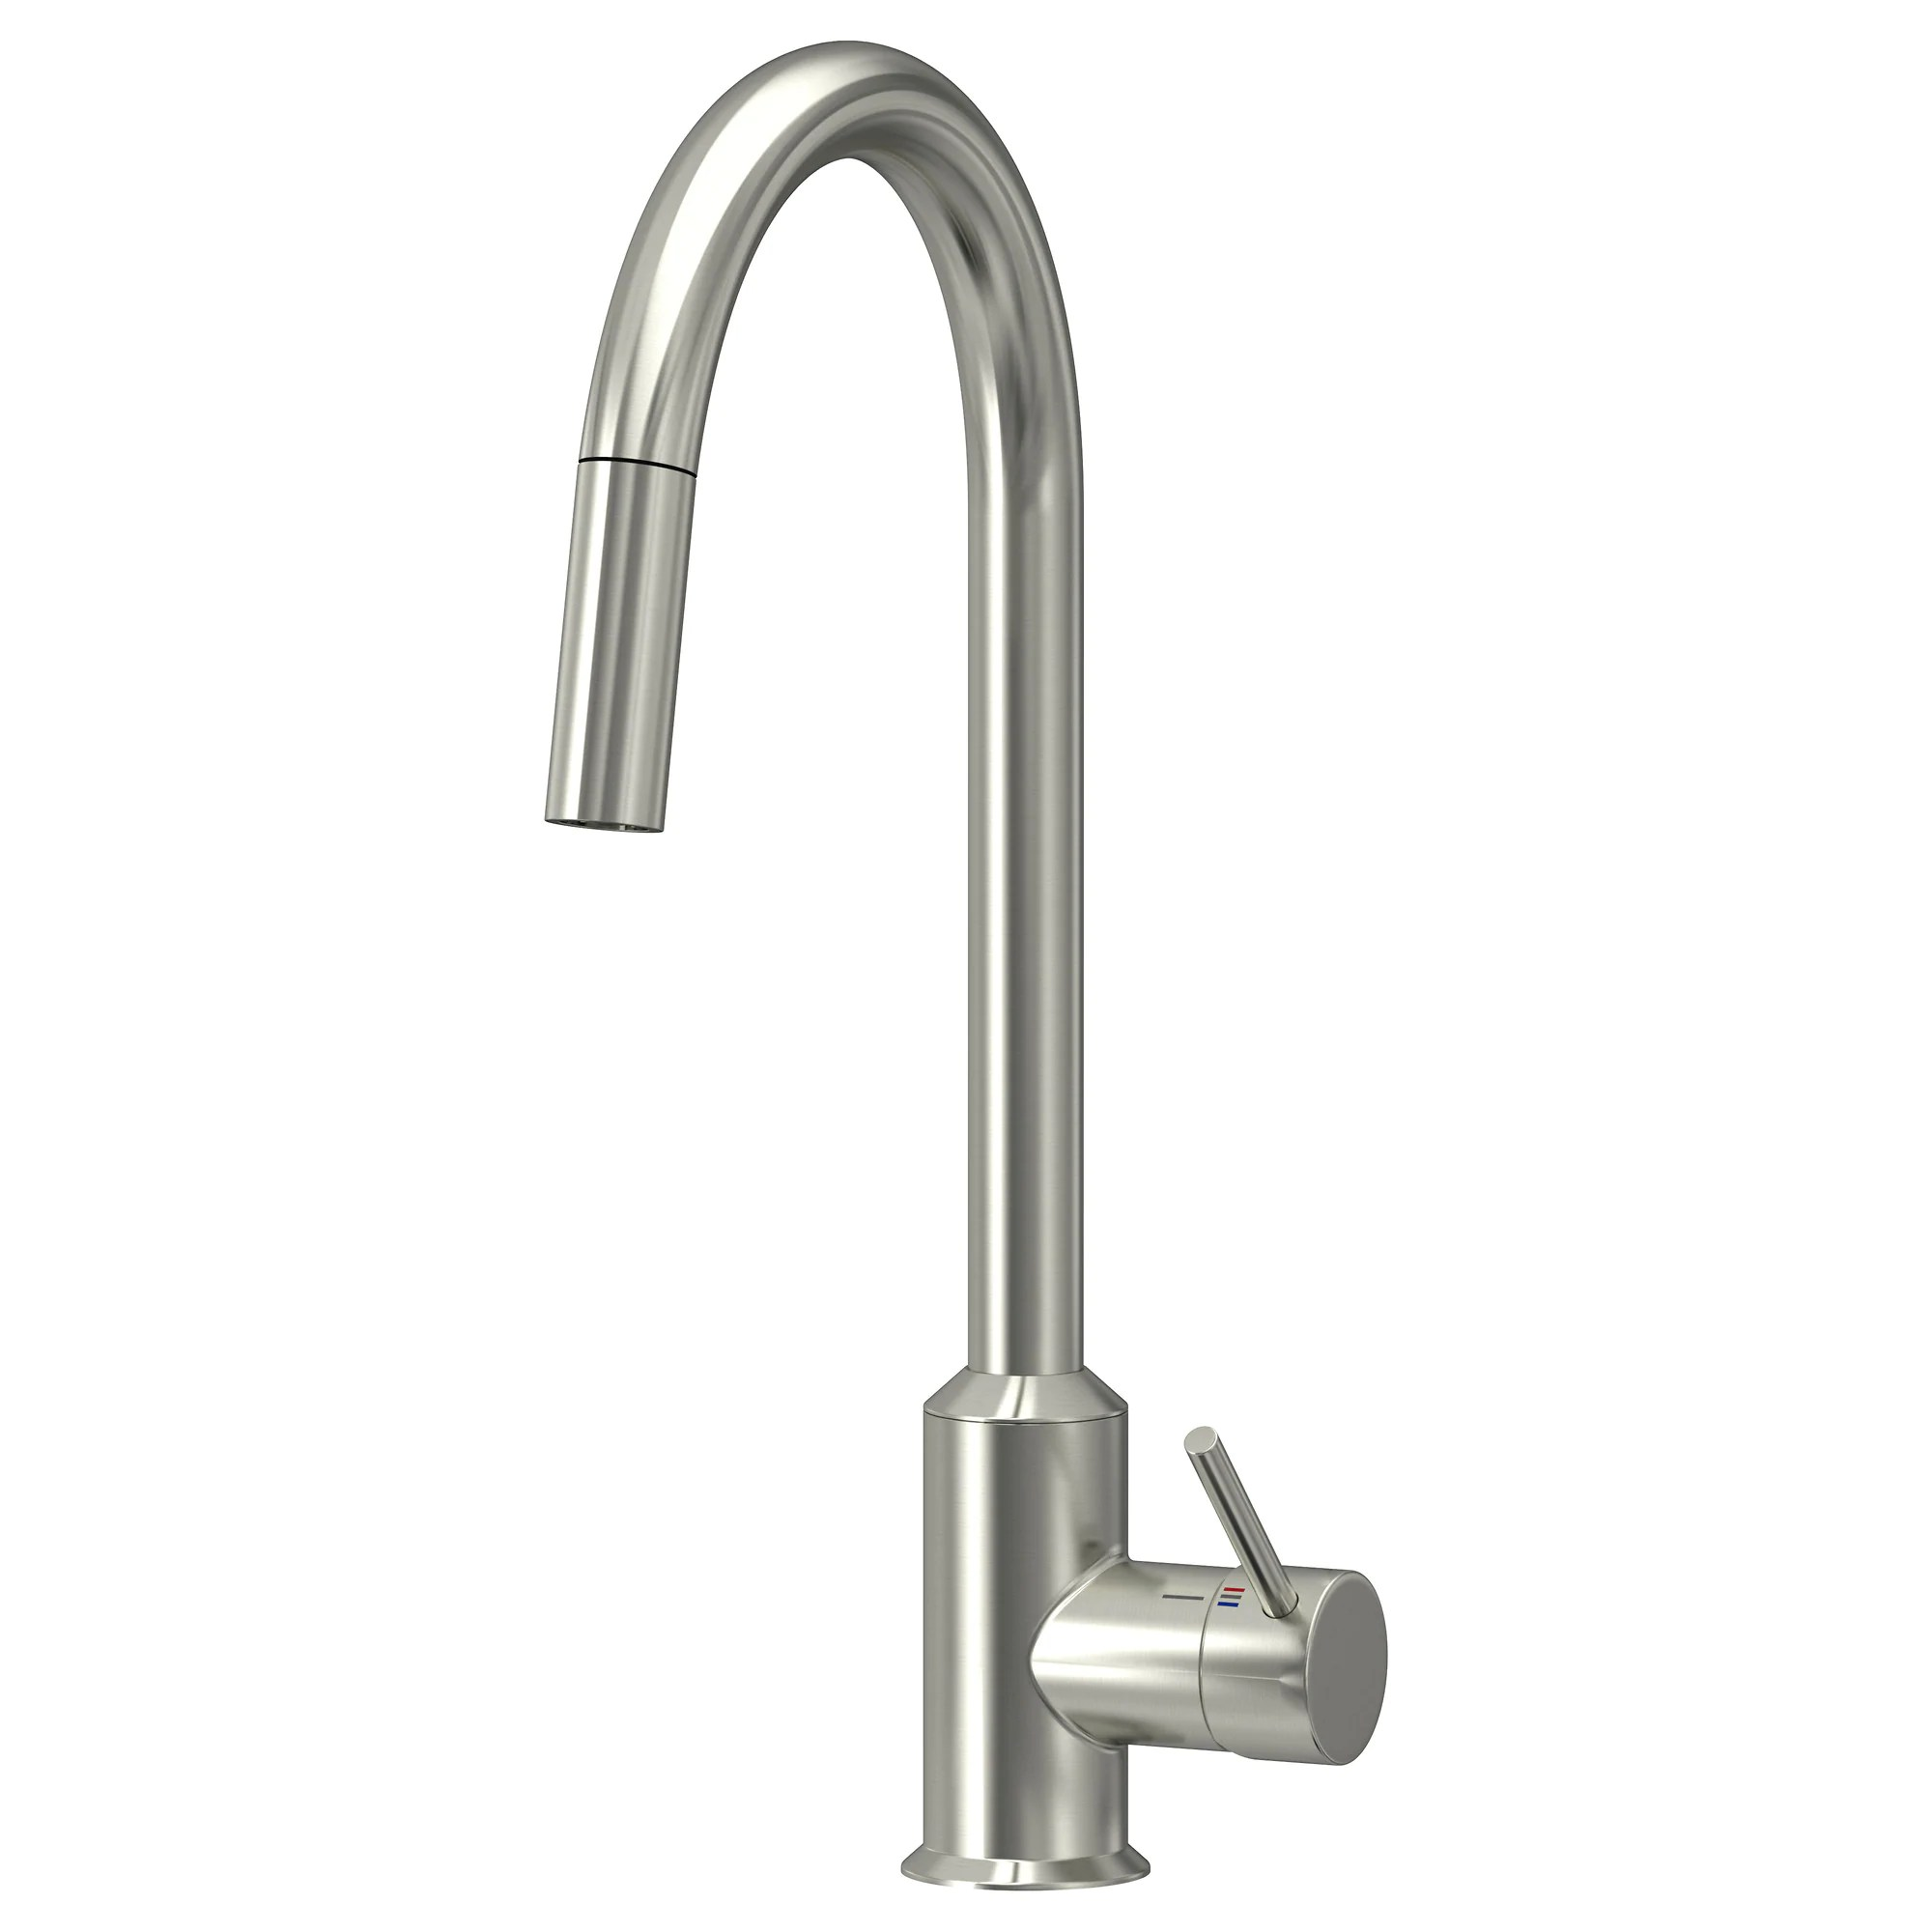 kitchen sinks and faucets RINGSK R kitchen faucet with pull out spout pull out stainless steel color Height